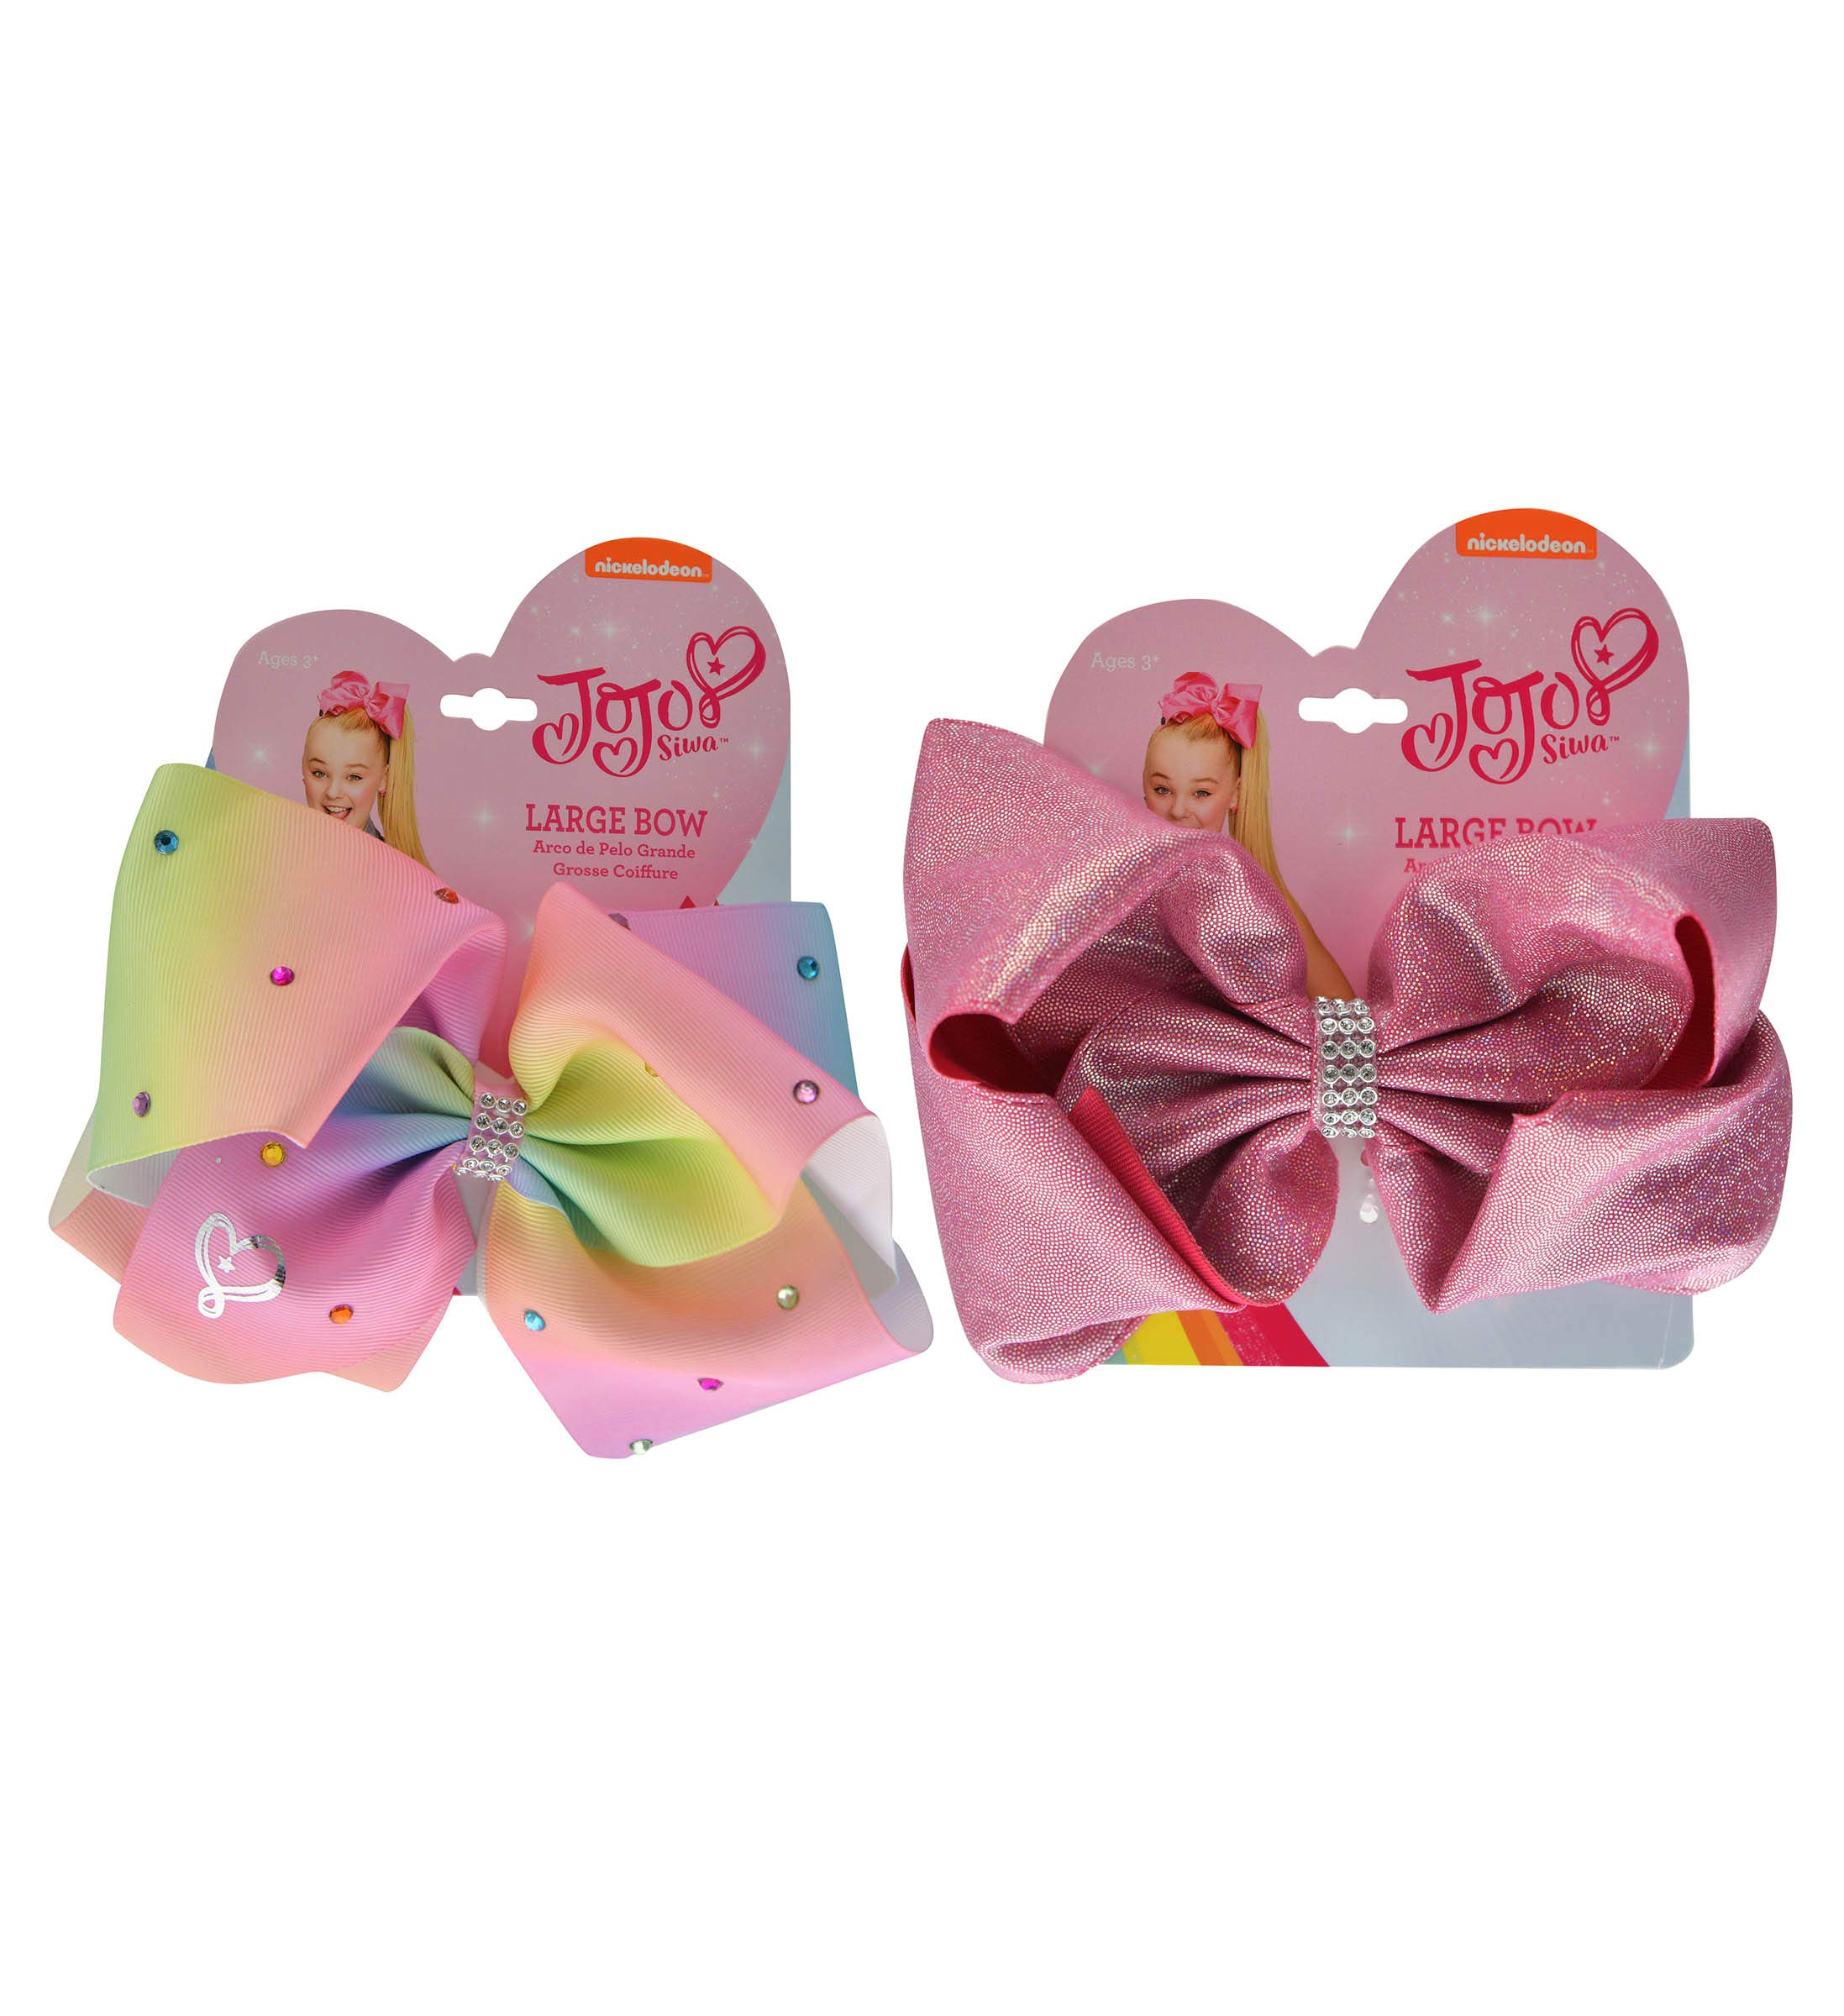 Mozlly Value Pack - JoJo Siwa Girls Rhinestone Pastel and Pink Glitter Signature Collection Hair Bow Clips - 5 x 5 inch - Elastic Pony - Novelty Fashion Collectibles (2 Items) by Mozlly (Image #1)